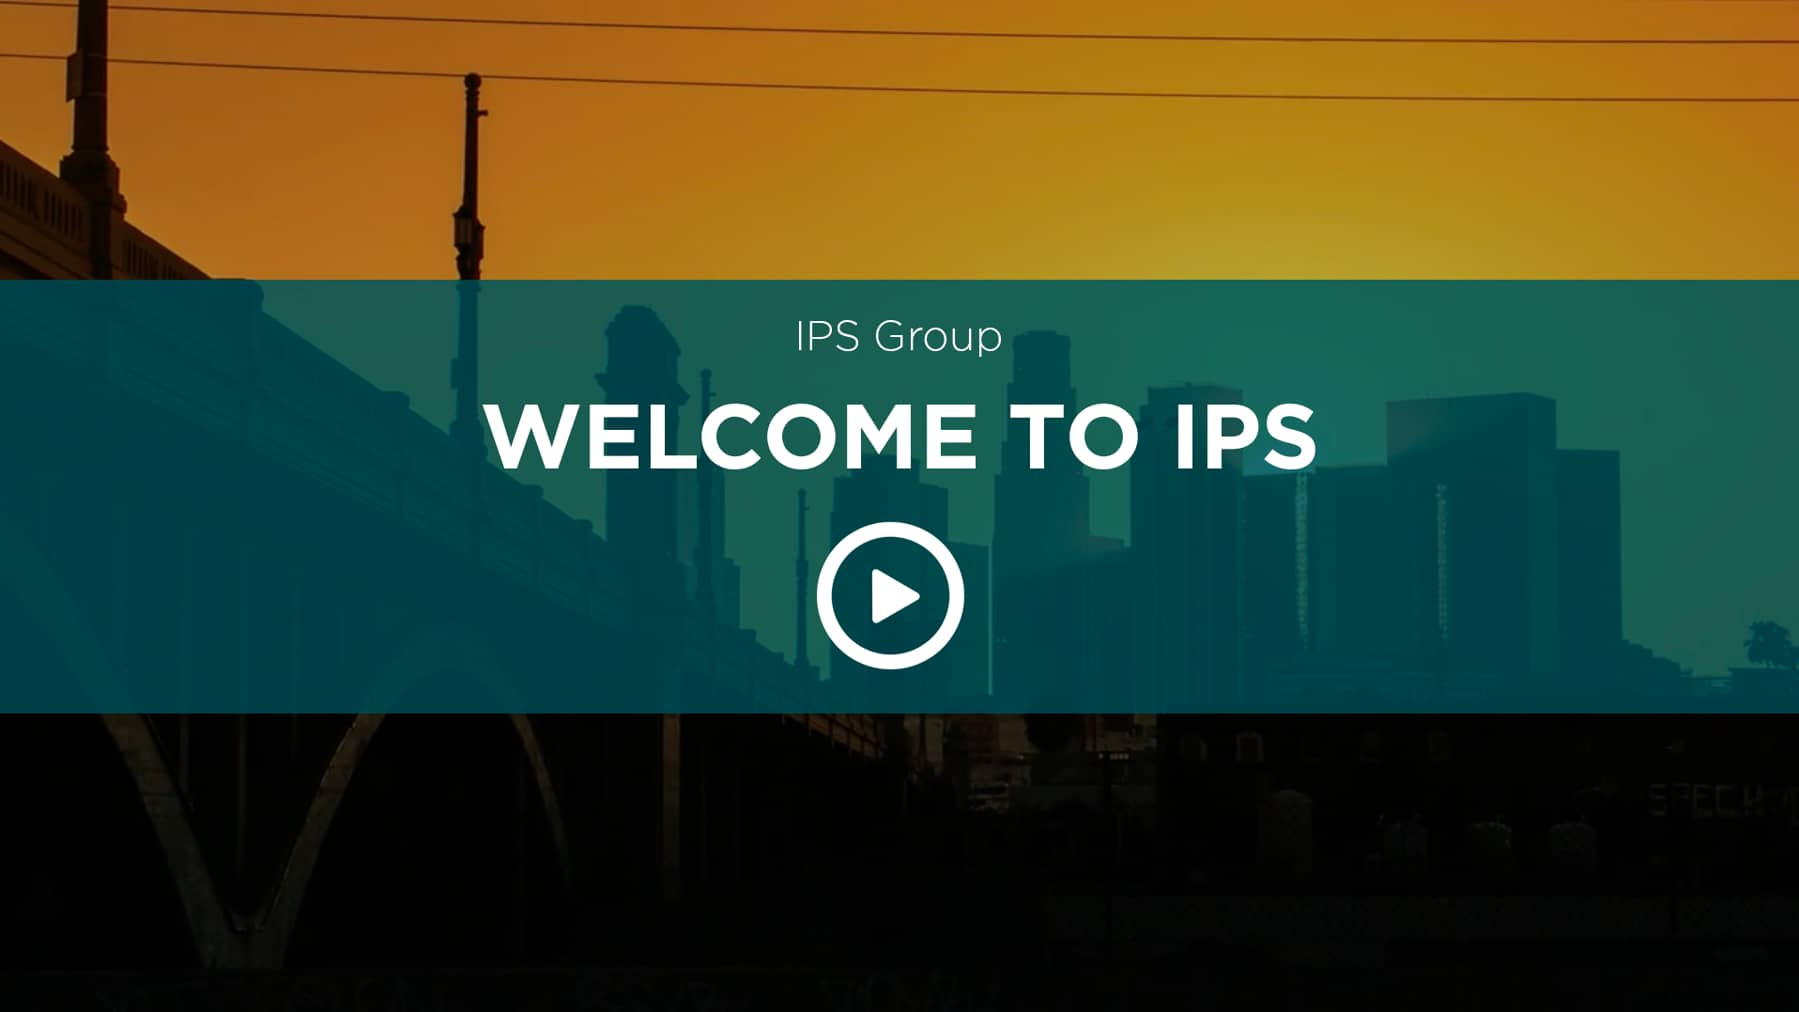 Welcome to IPS